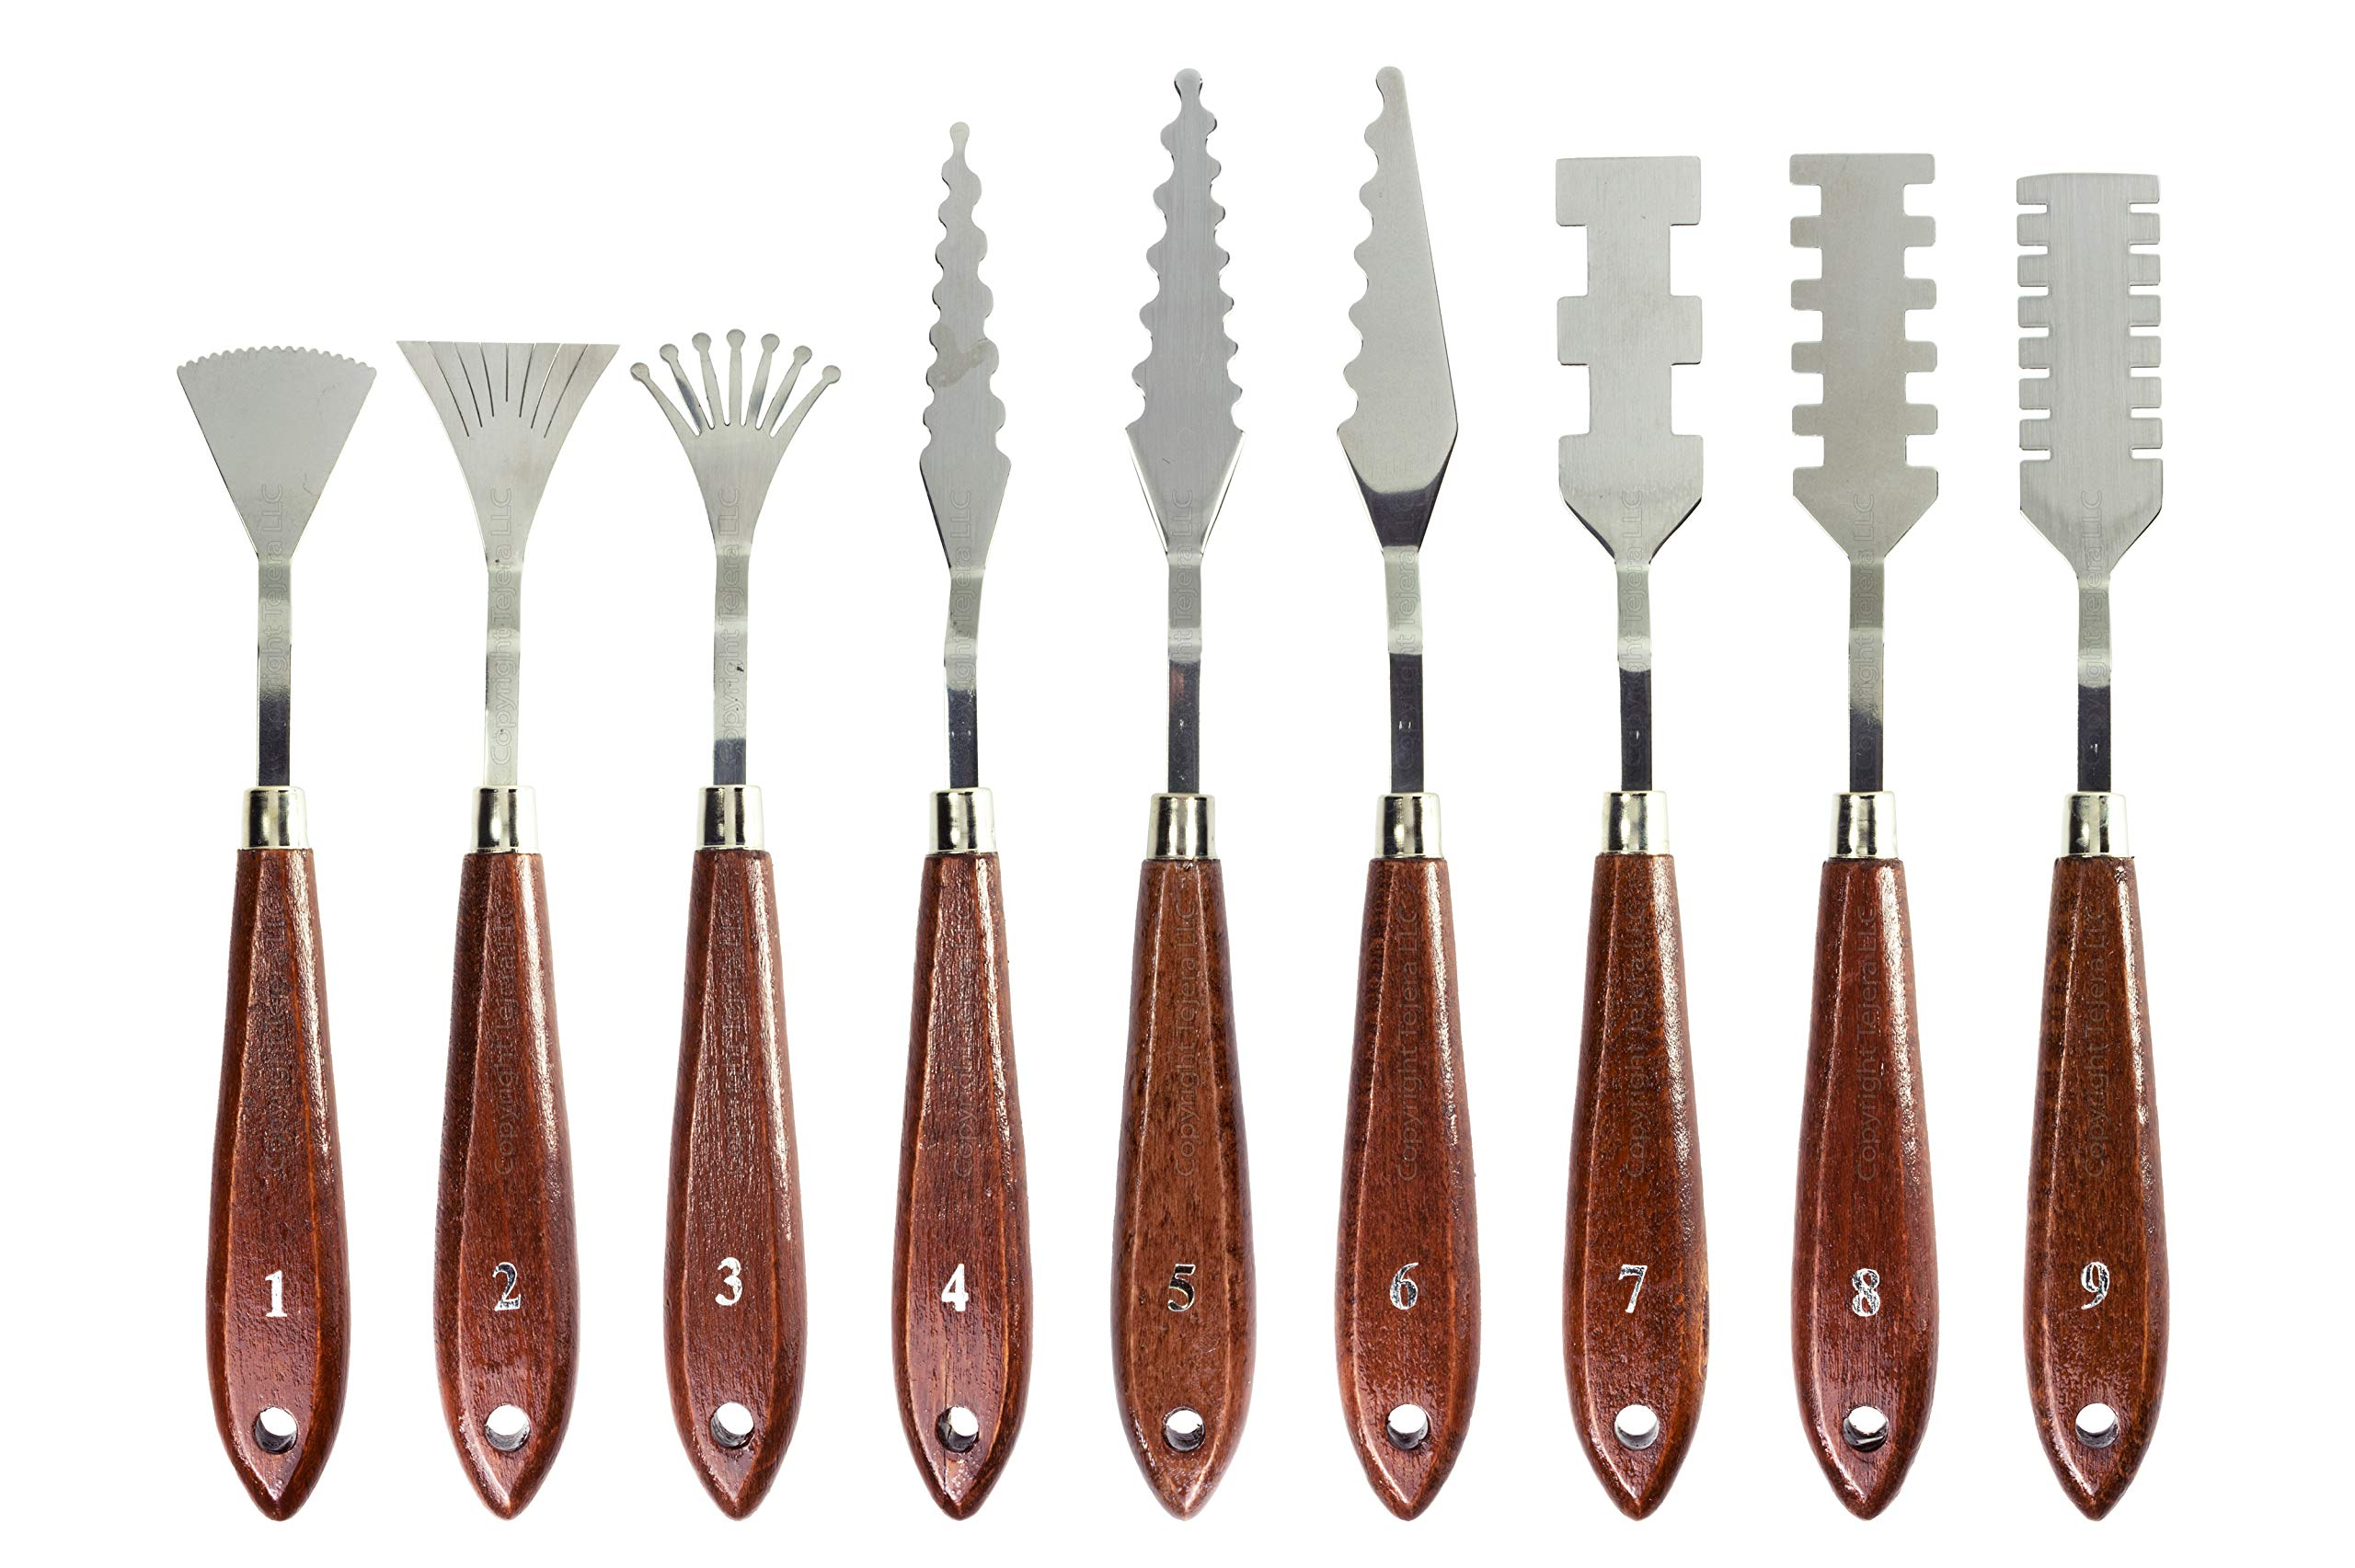 Stainless Steel Palette Knives for Artists - 9 Piece of Spatulas for FX Special Effects - Thin and Flexible Art Tools for Oil Painting, Acrylic Mixing, Etc.